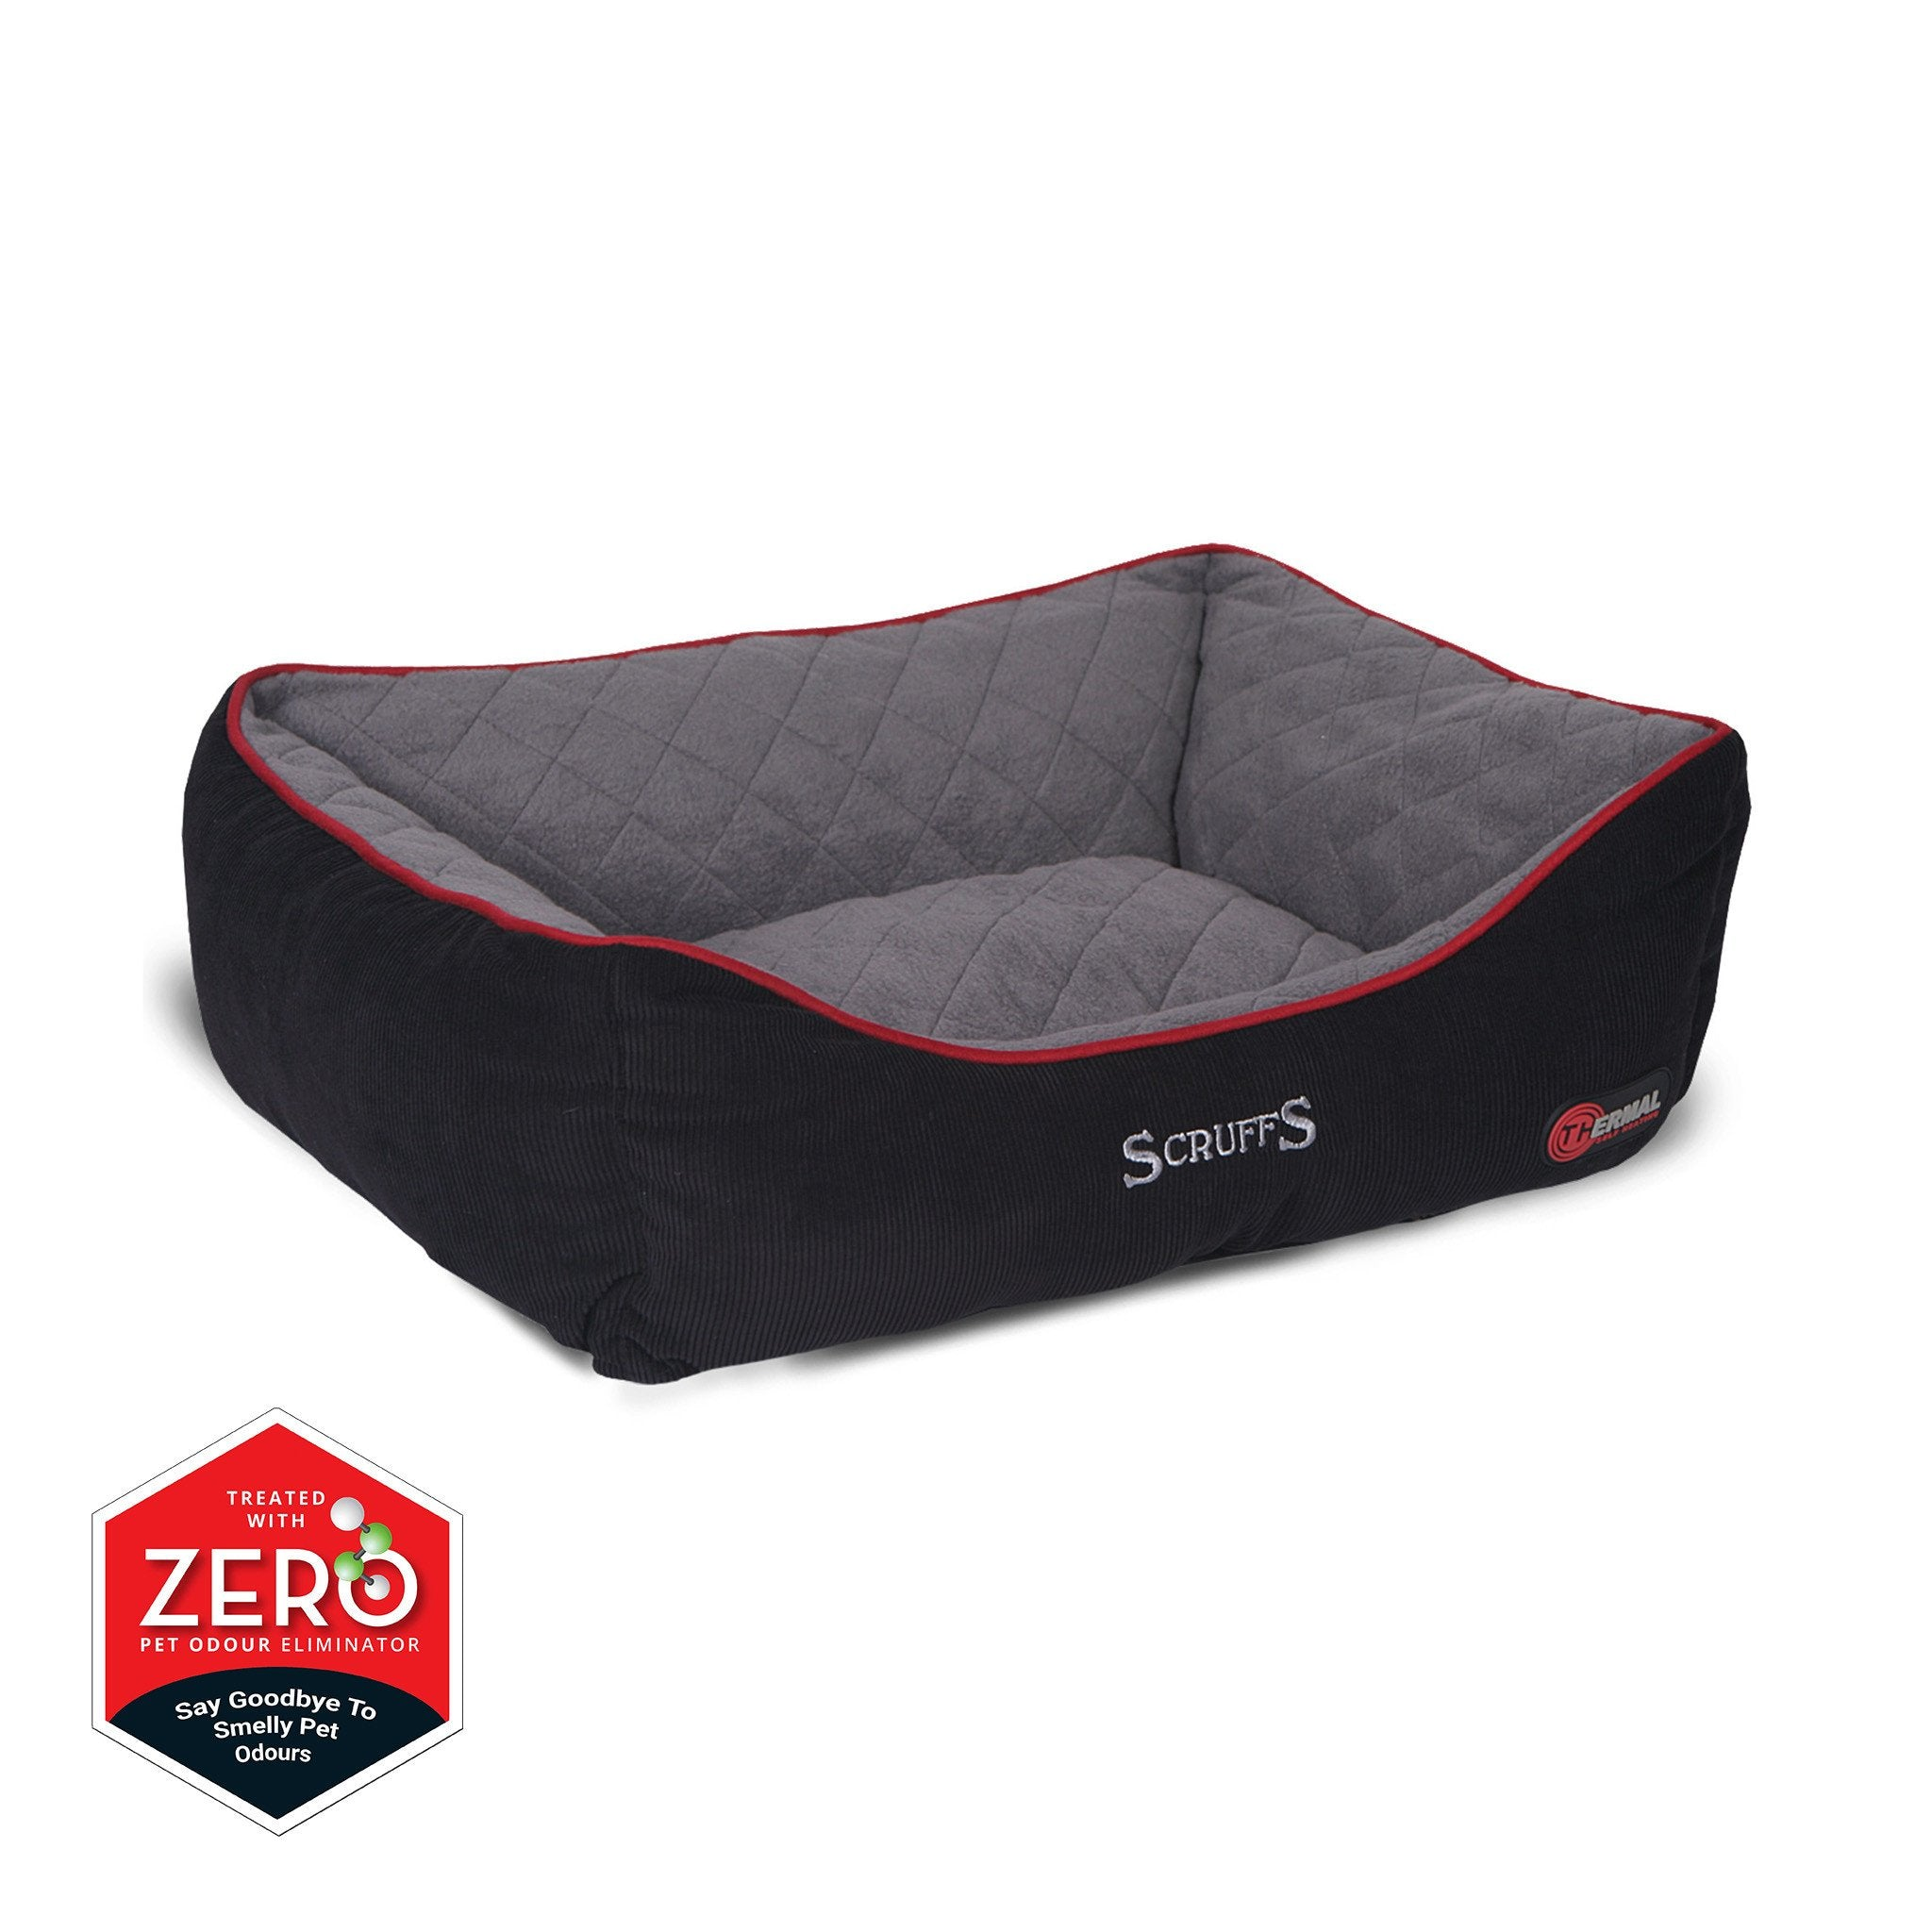 inch bed beds foam medium with dog memory elevated orthopedic pin removable stella cover